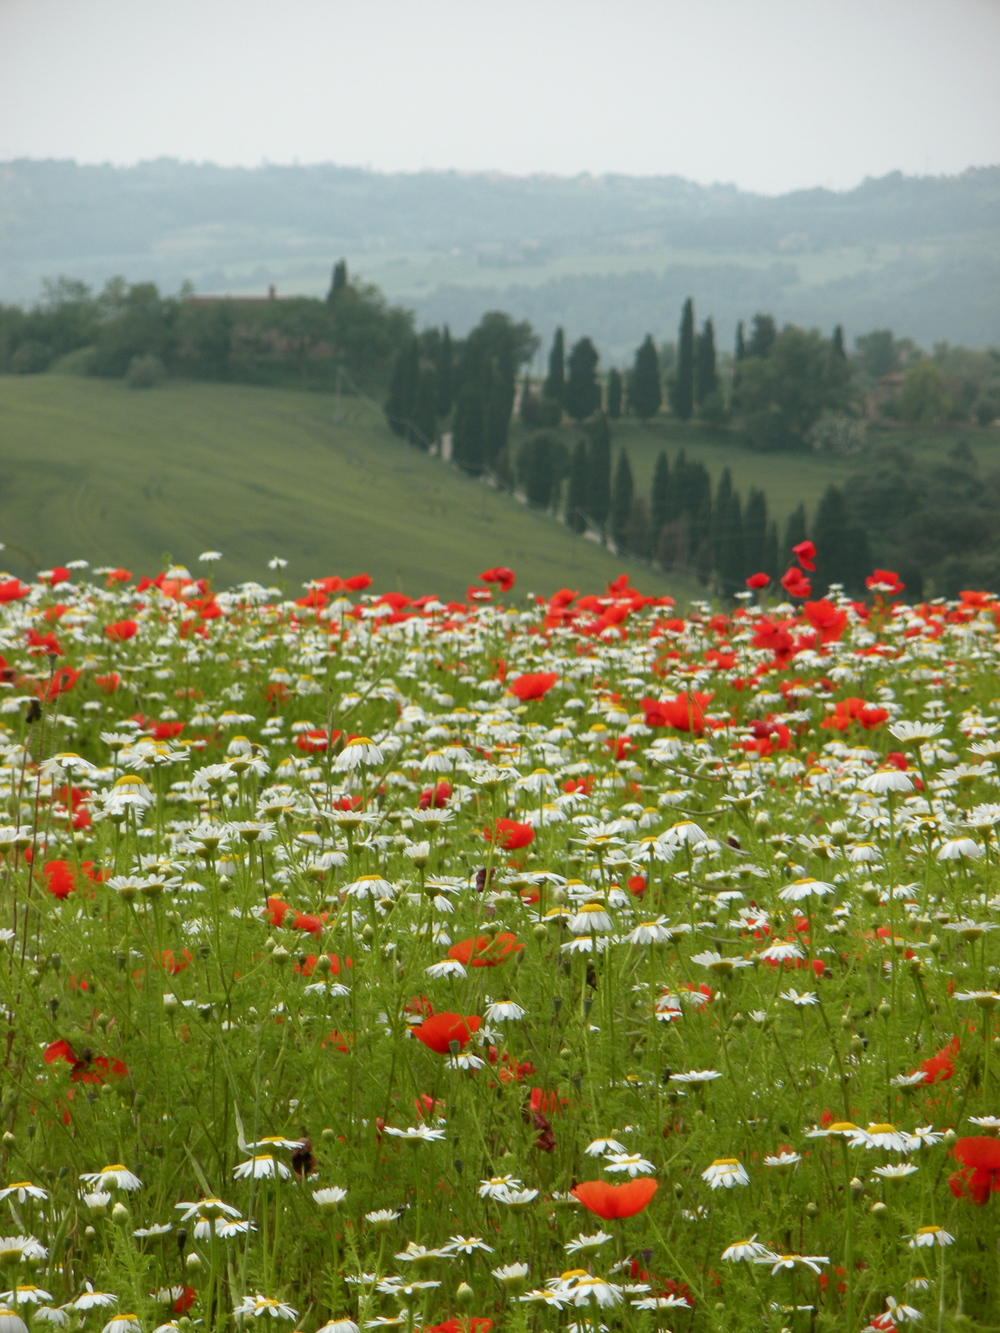 Brilliant red poppies EAT.PRAY.MOVE Yoga Retreats | Tuscany, Italy